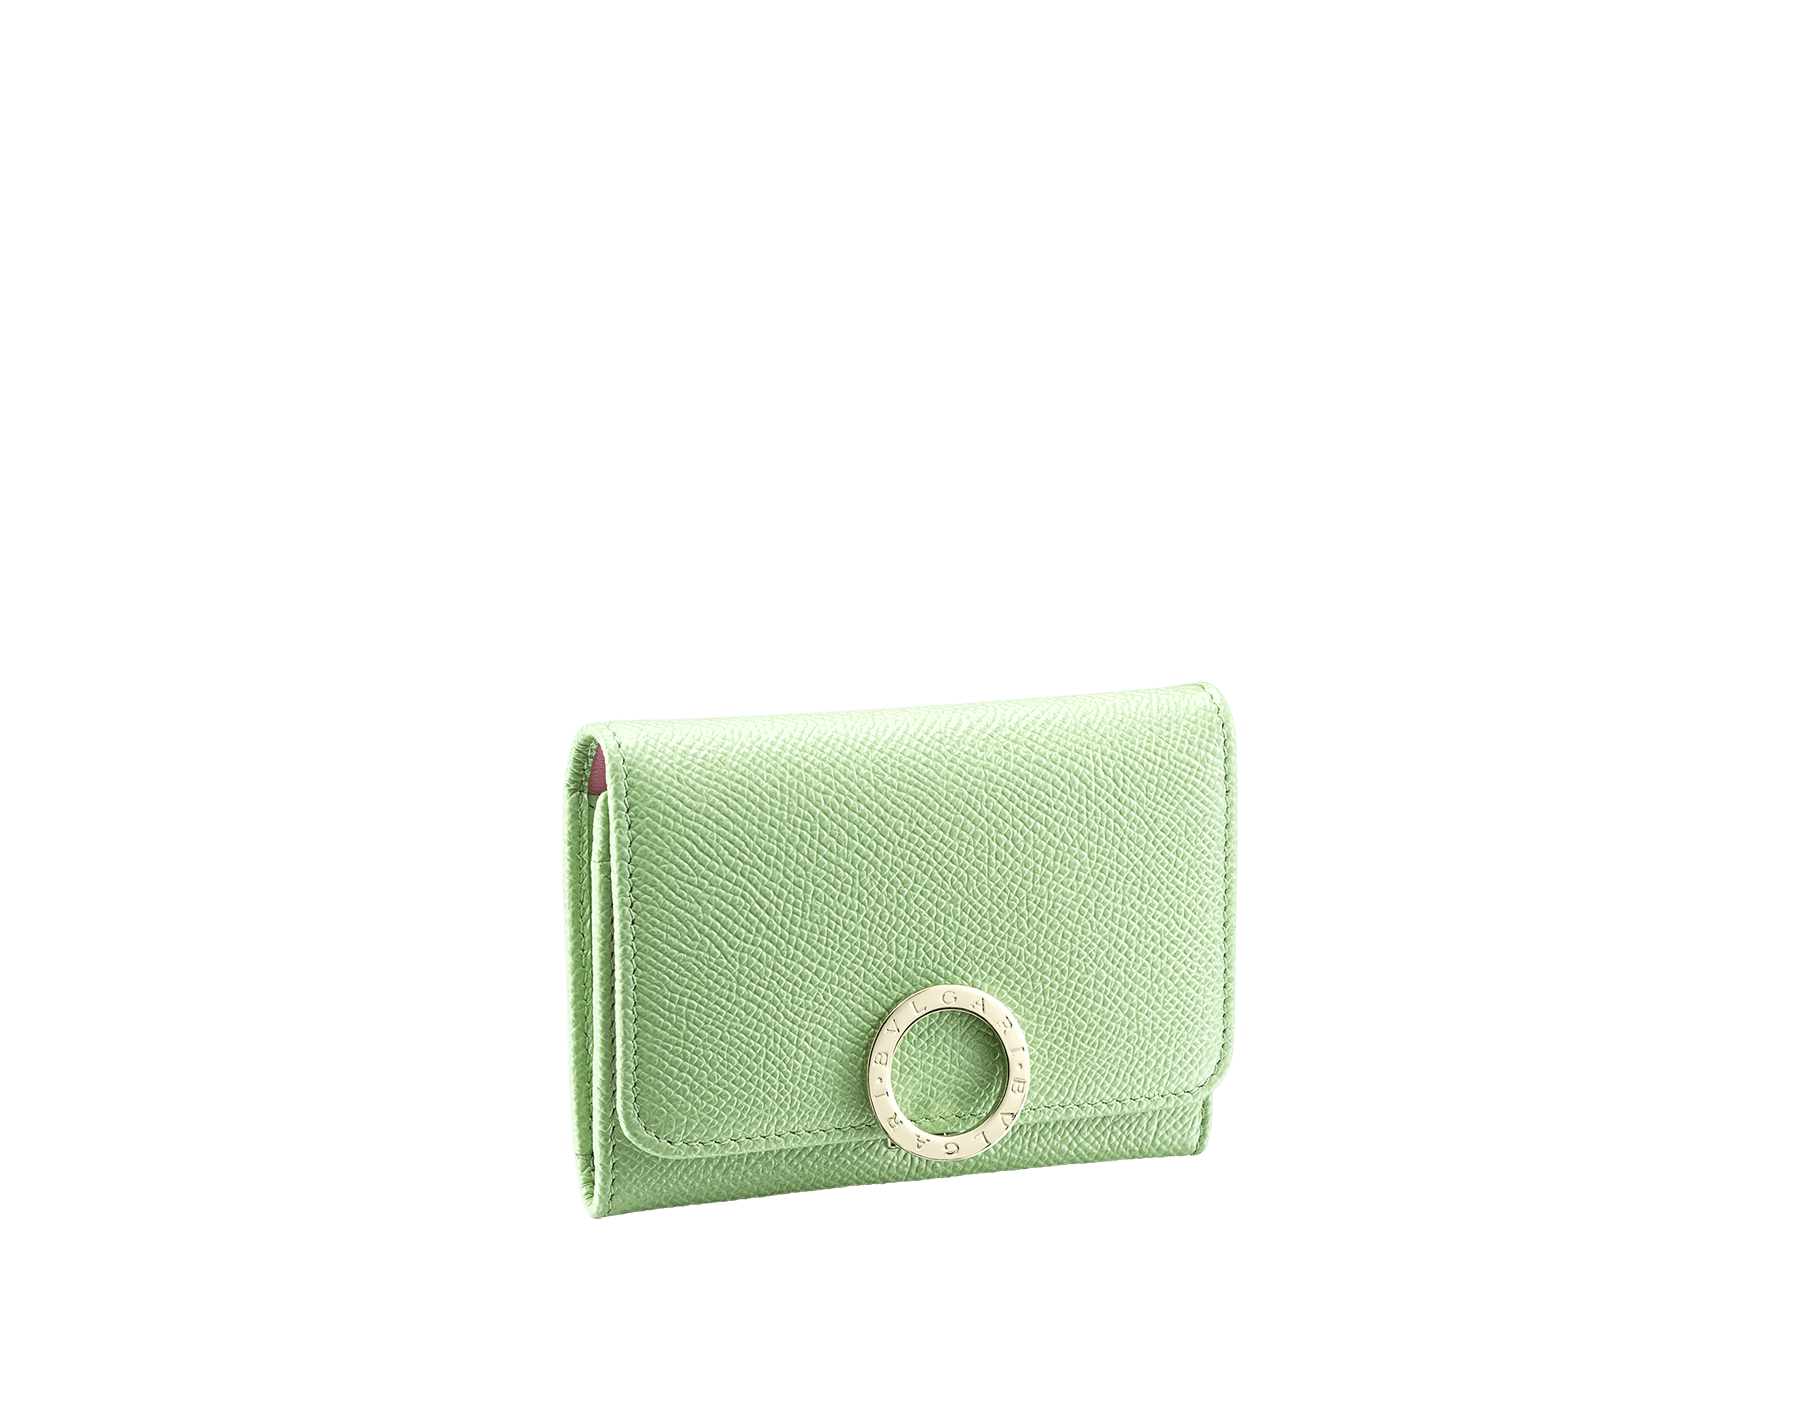 """""""BVLGARI BVLGARI"""" business card holder in mint bright grain calf leather and taffy quartz nappa leather. Iconic logo clip closure in light gold plated brass. 289748 image 1"""